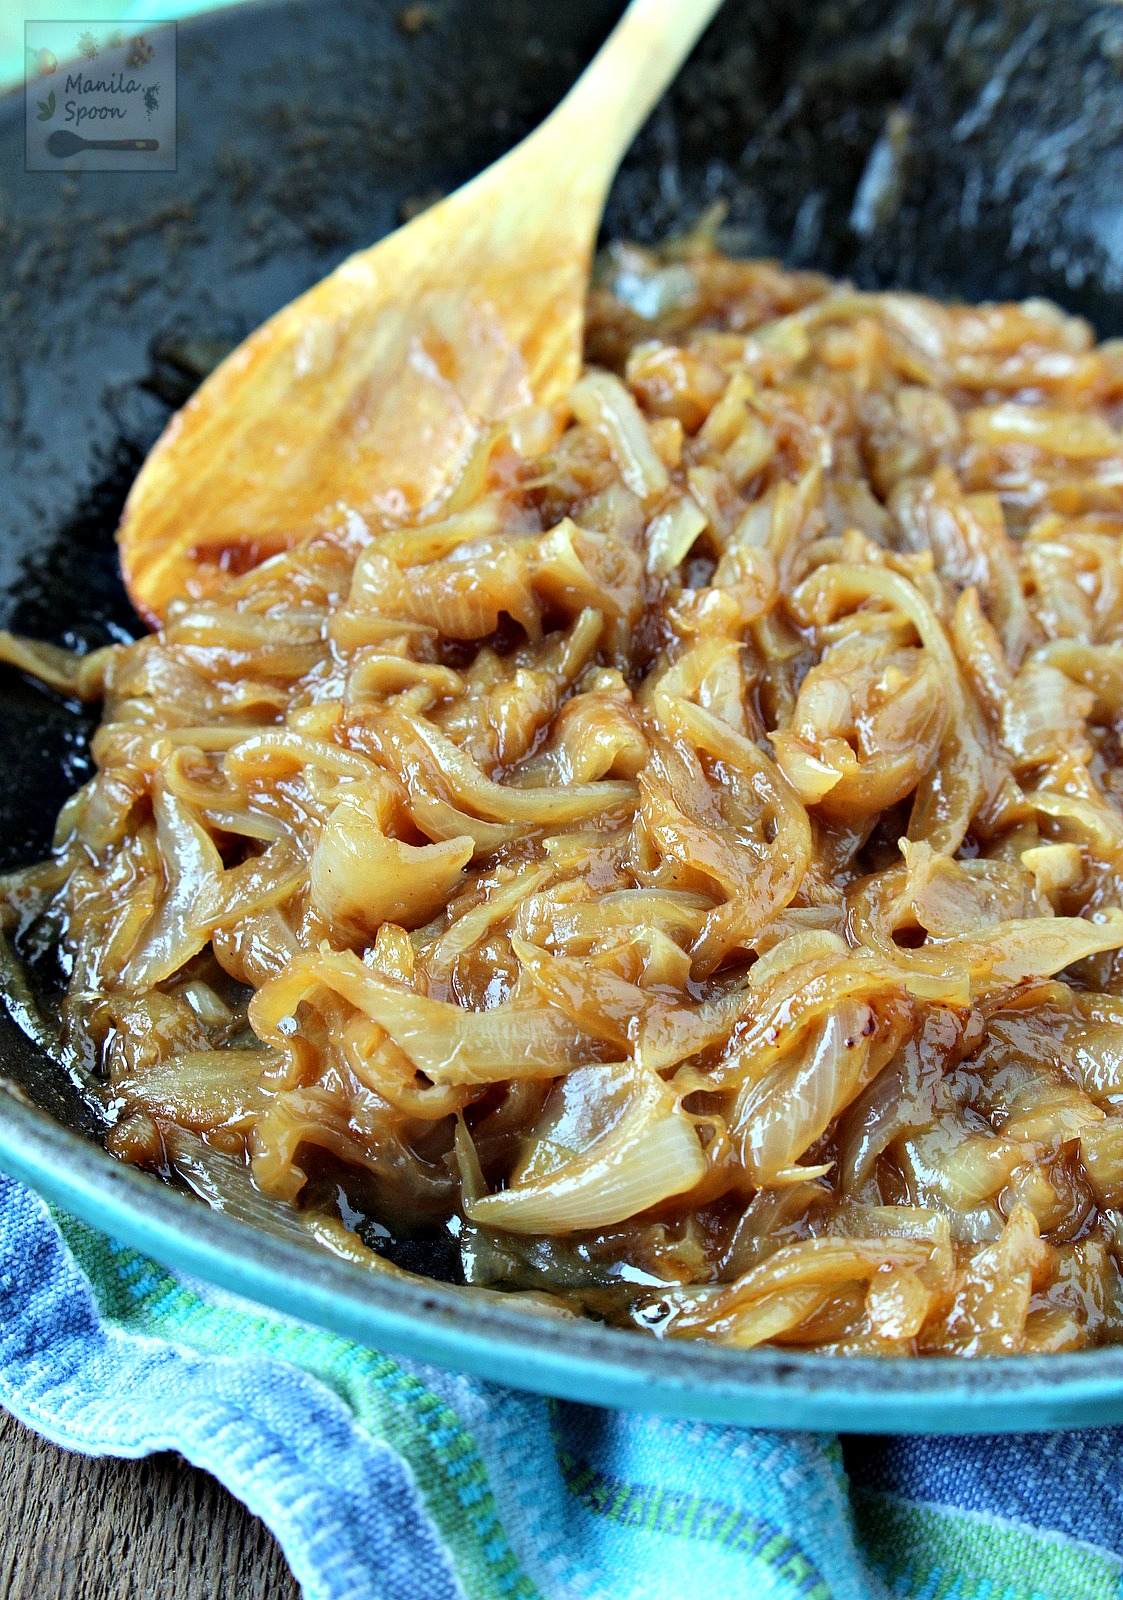 Just a few ingredients are needed to turn a batch of onions into something delightfully rich, sweet and savory. Use caramelized onions as pizza topping, for sandwiches, salad, to jazz up appetizers and so much more!   manilaspoon.com